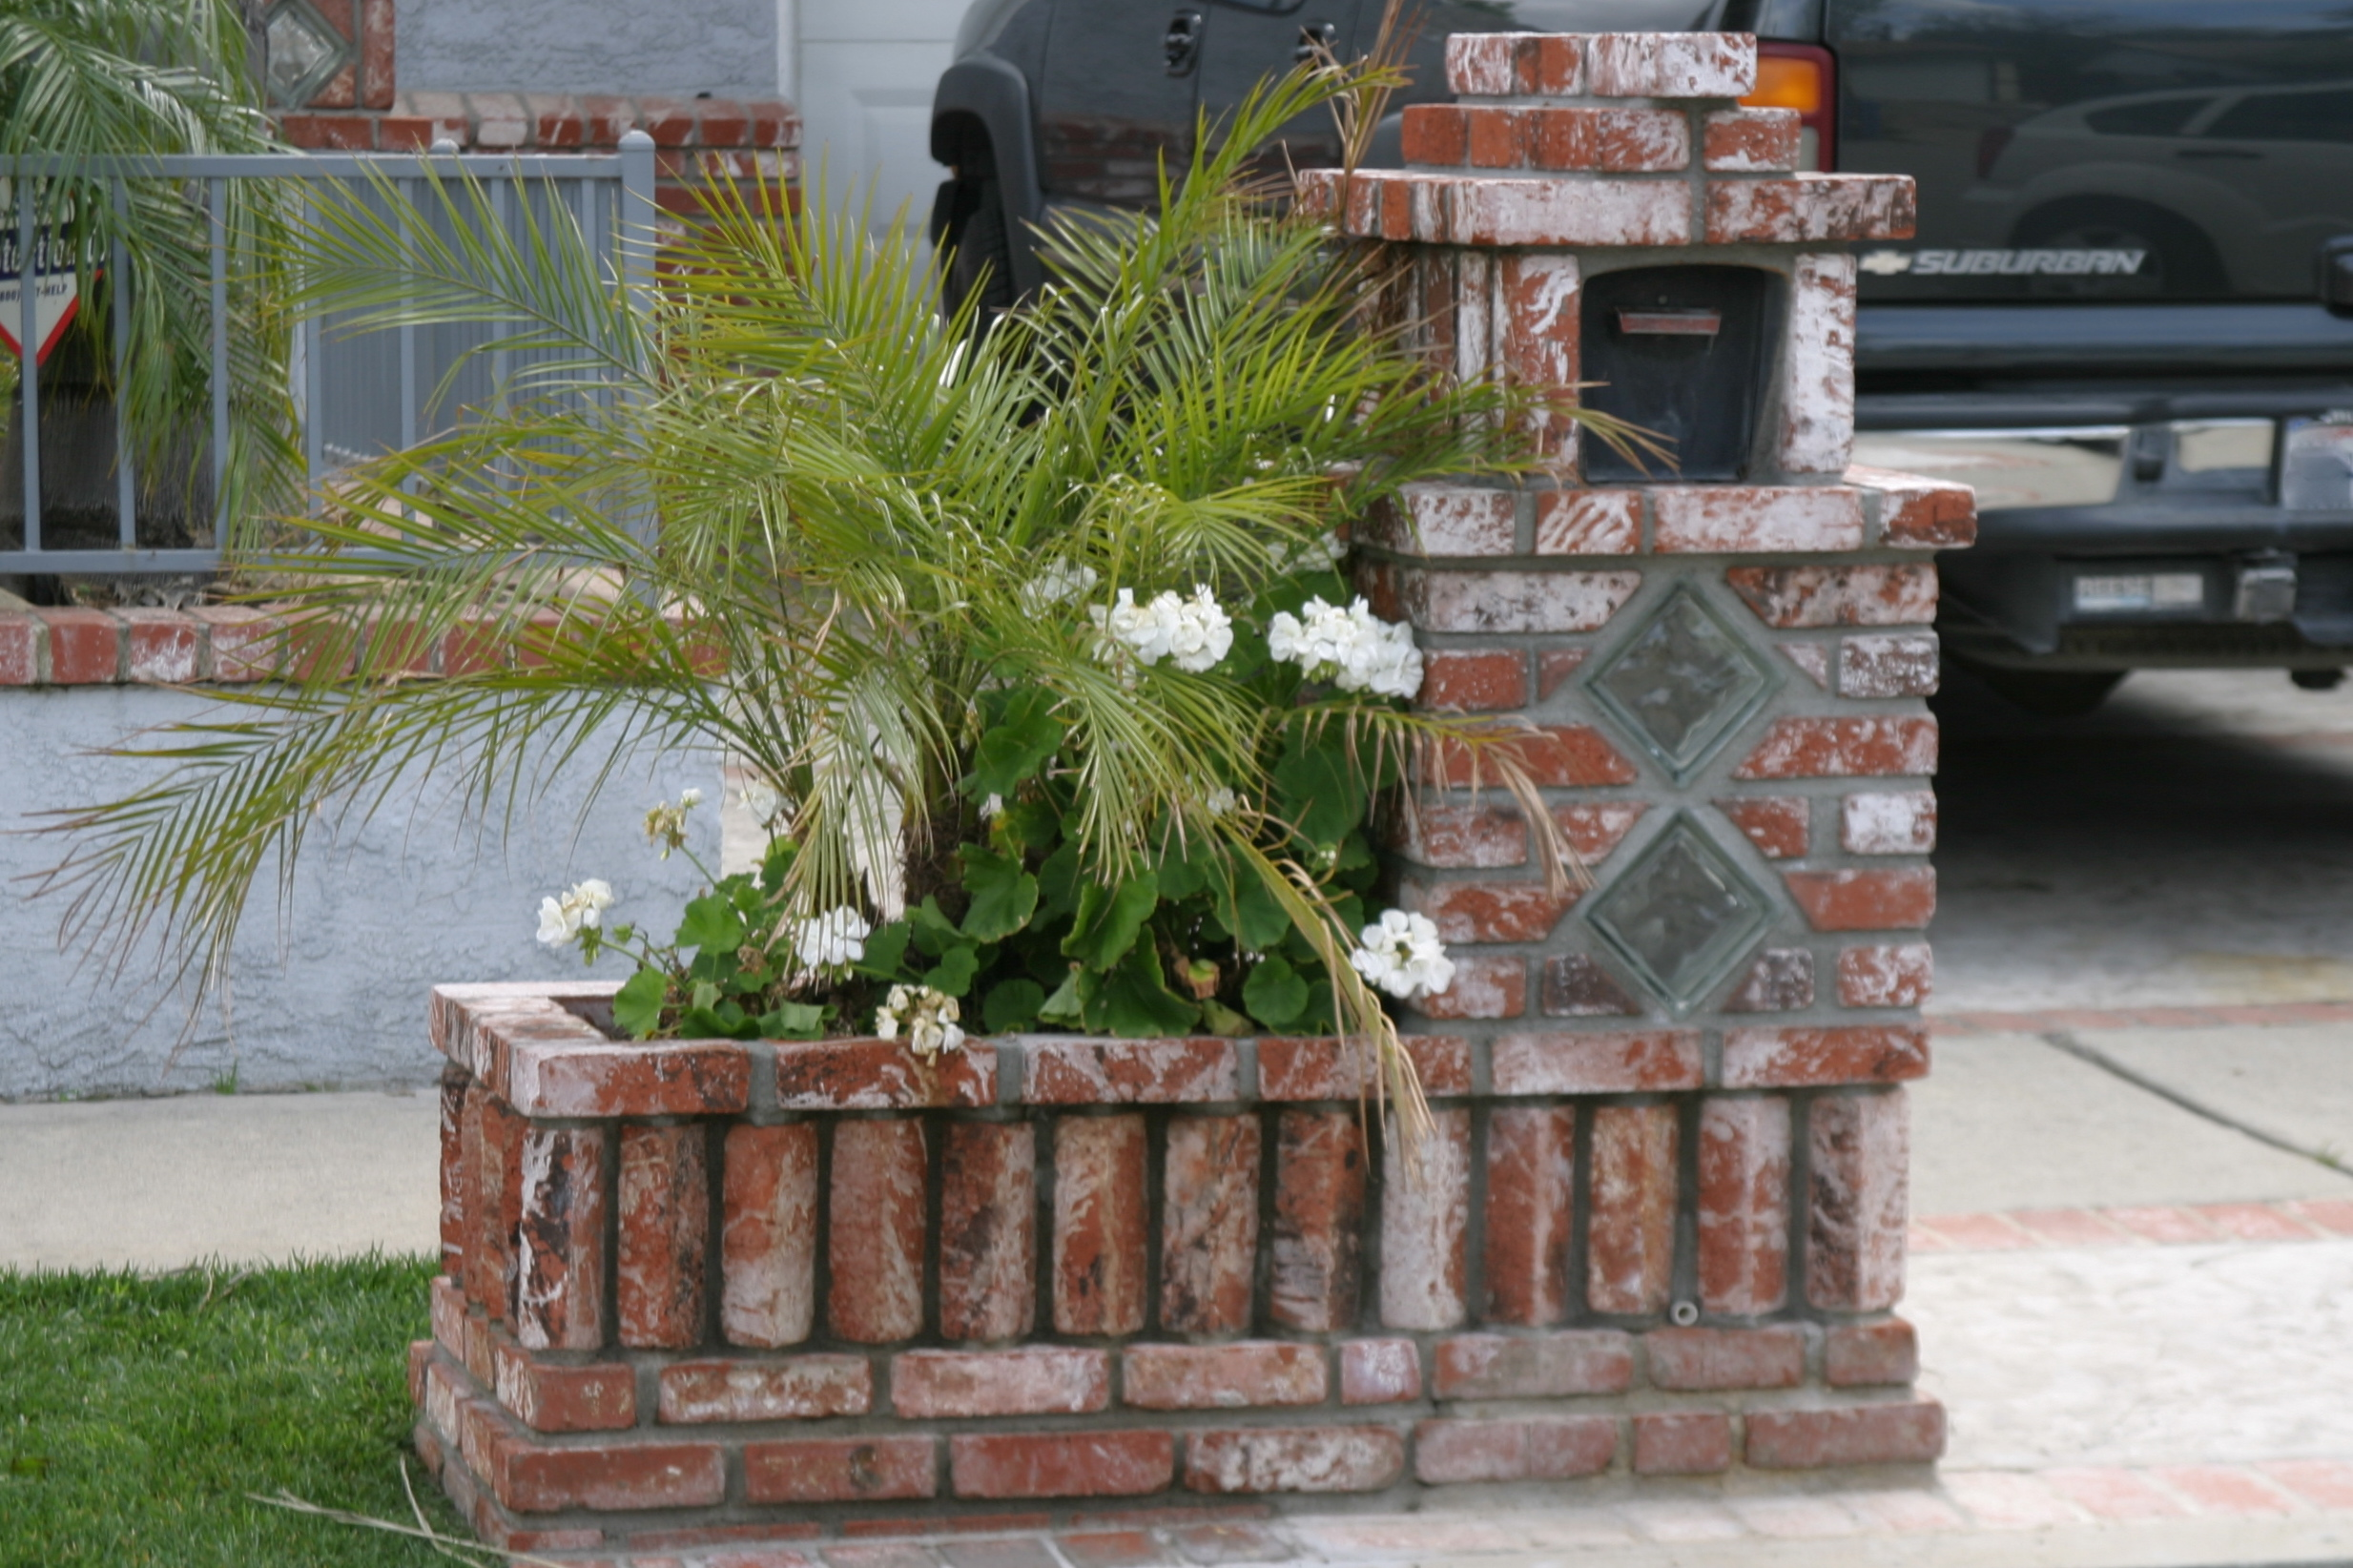 Brick Planter Box Ideas Brick Mailbox Ideas House Ideas Gift Ideas